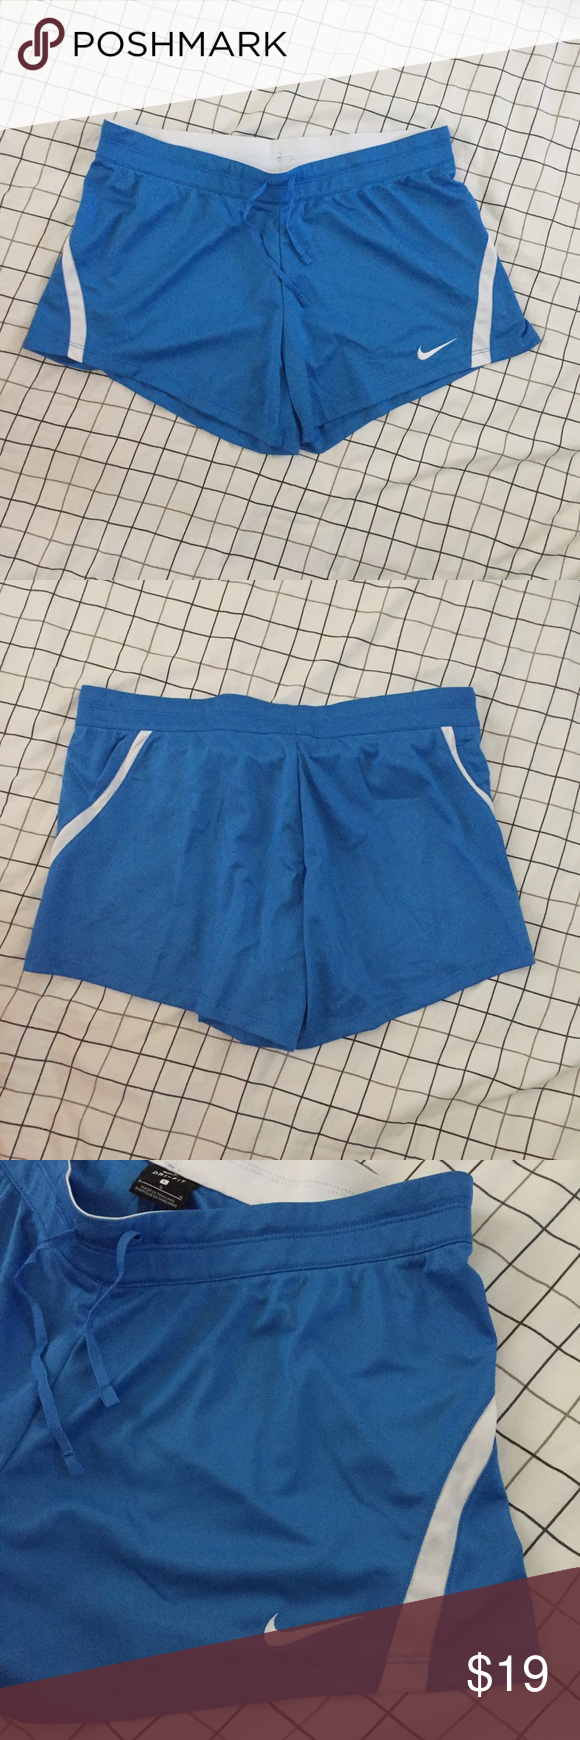 Nike Large Dri-Fit Infiknit Training Shorts New Women's Nike Large Dri-Fit Infiknit Training Shorts  Style: 724426-435 Size: large Drawstring waist  Materials: 100% polyester  Measurements: Waist: 17in Hips: 19in Inseam: 13in Length: 11.5in  Tag price: $30 Nike Shorts